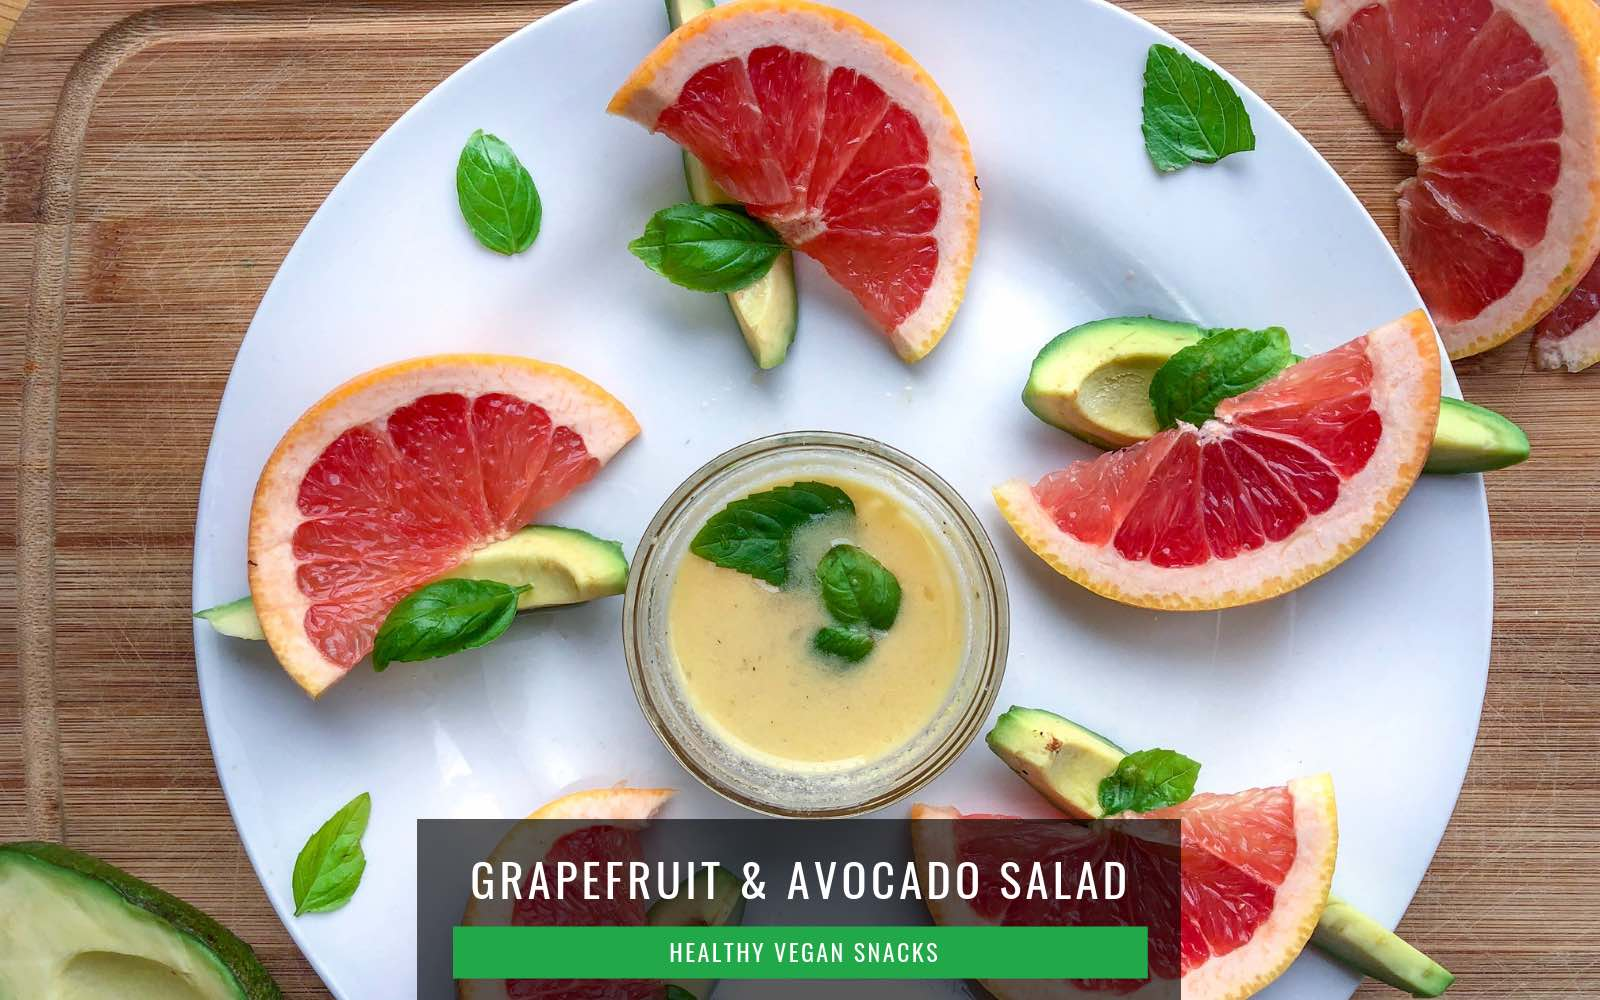 Vegan Snack Ideas | Grapefruit and Avocado Salad